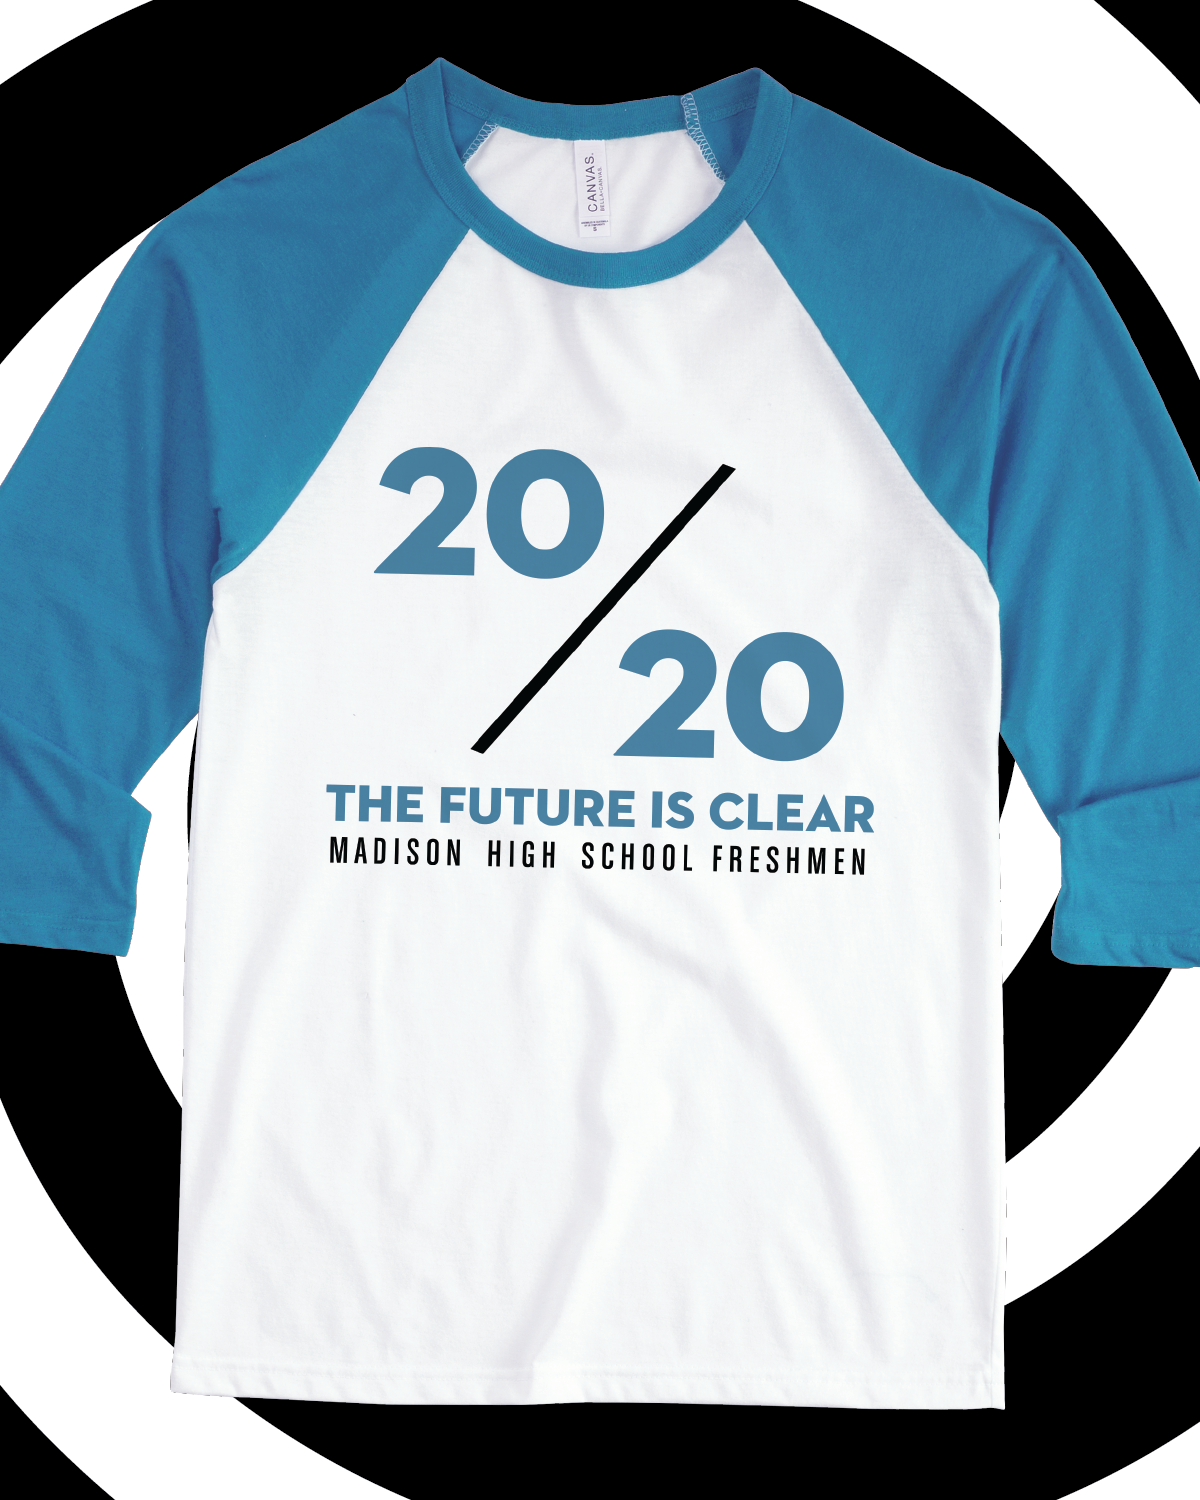 20 20 The Future Is Clear Class Of 2020 Raglan Design Idea For